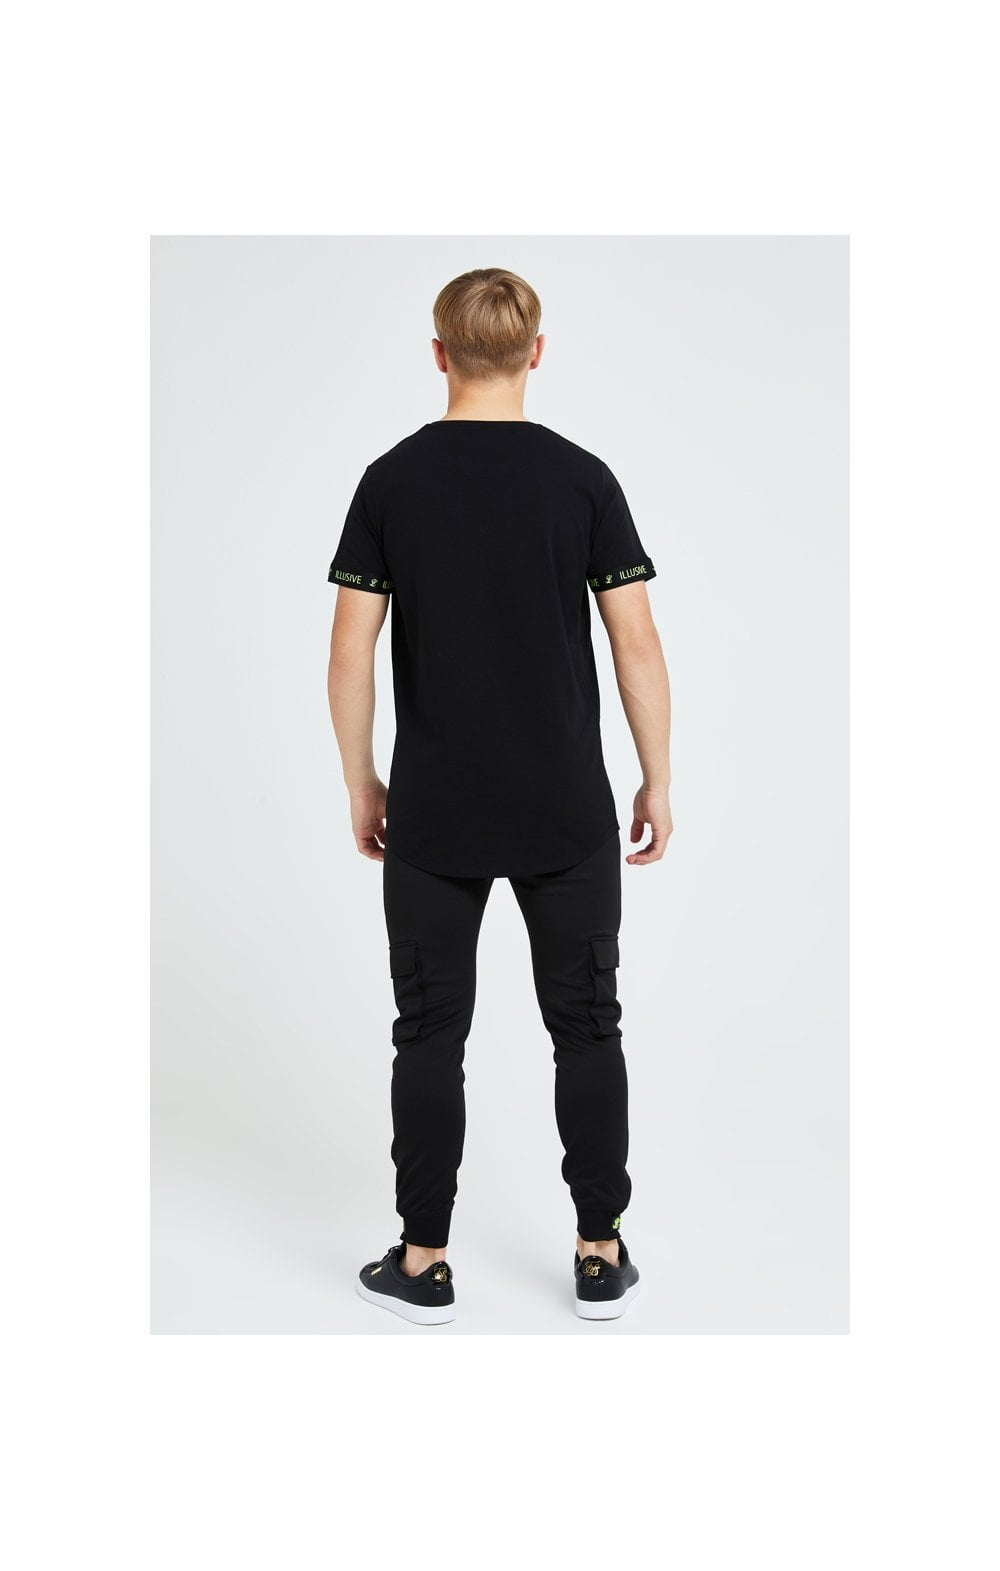 Illusive London Element Tech Tee - Black & Green (3)